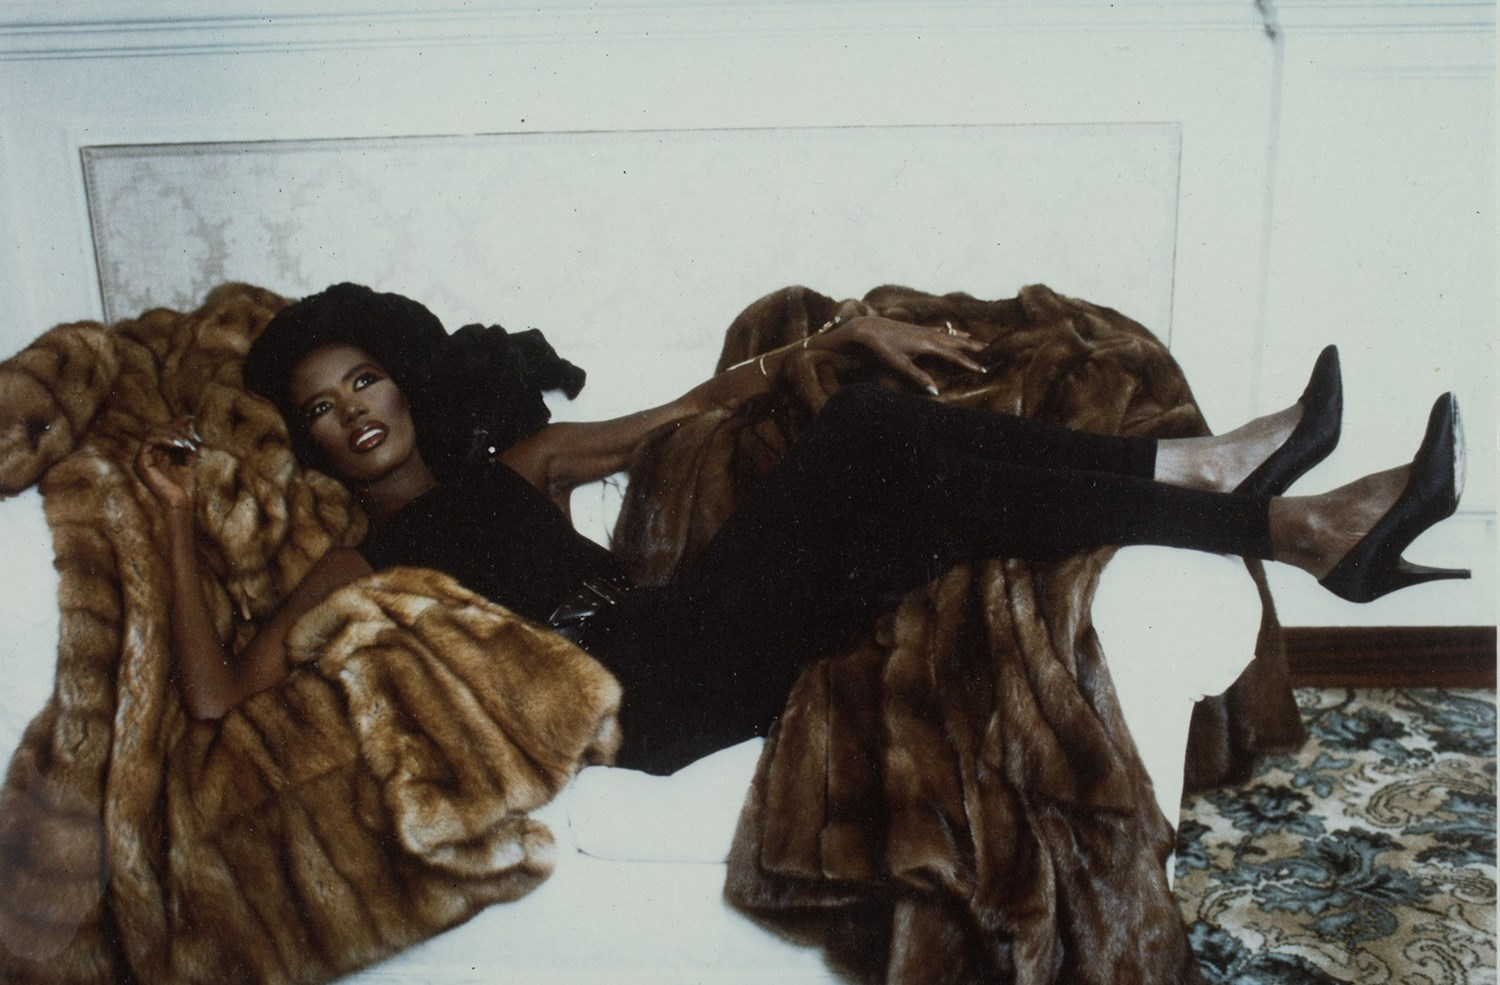 GRACE JONES FENDI ARCHIVE 1986 DAZED DIGITAL